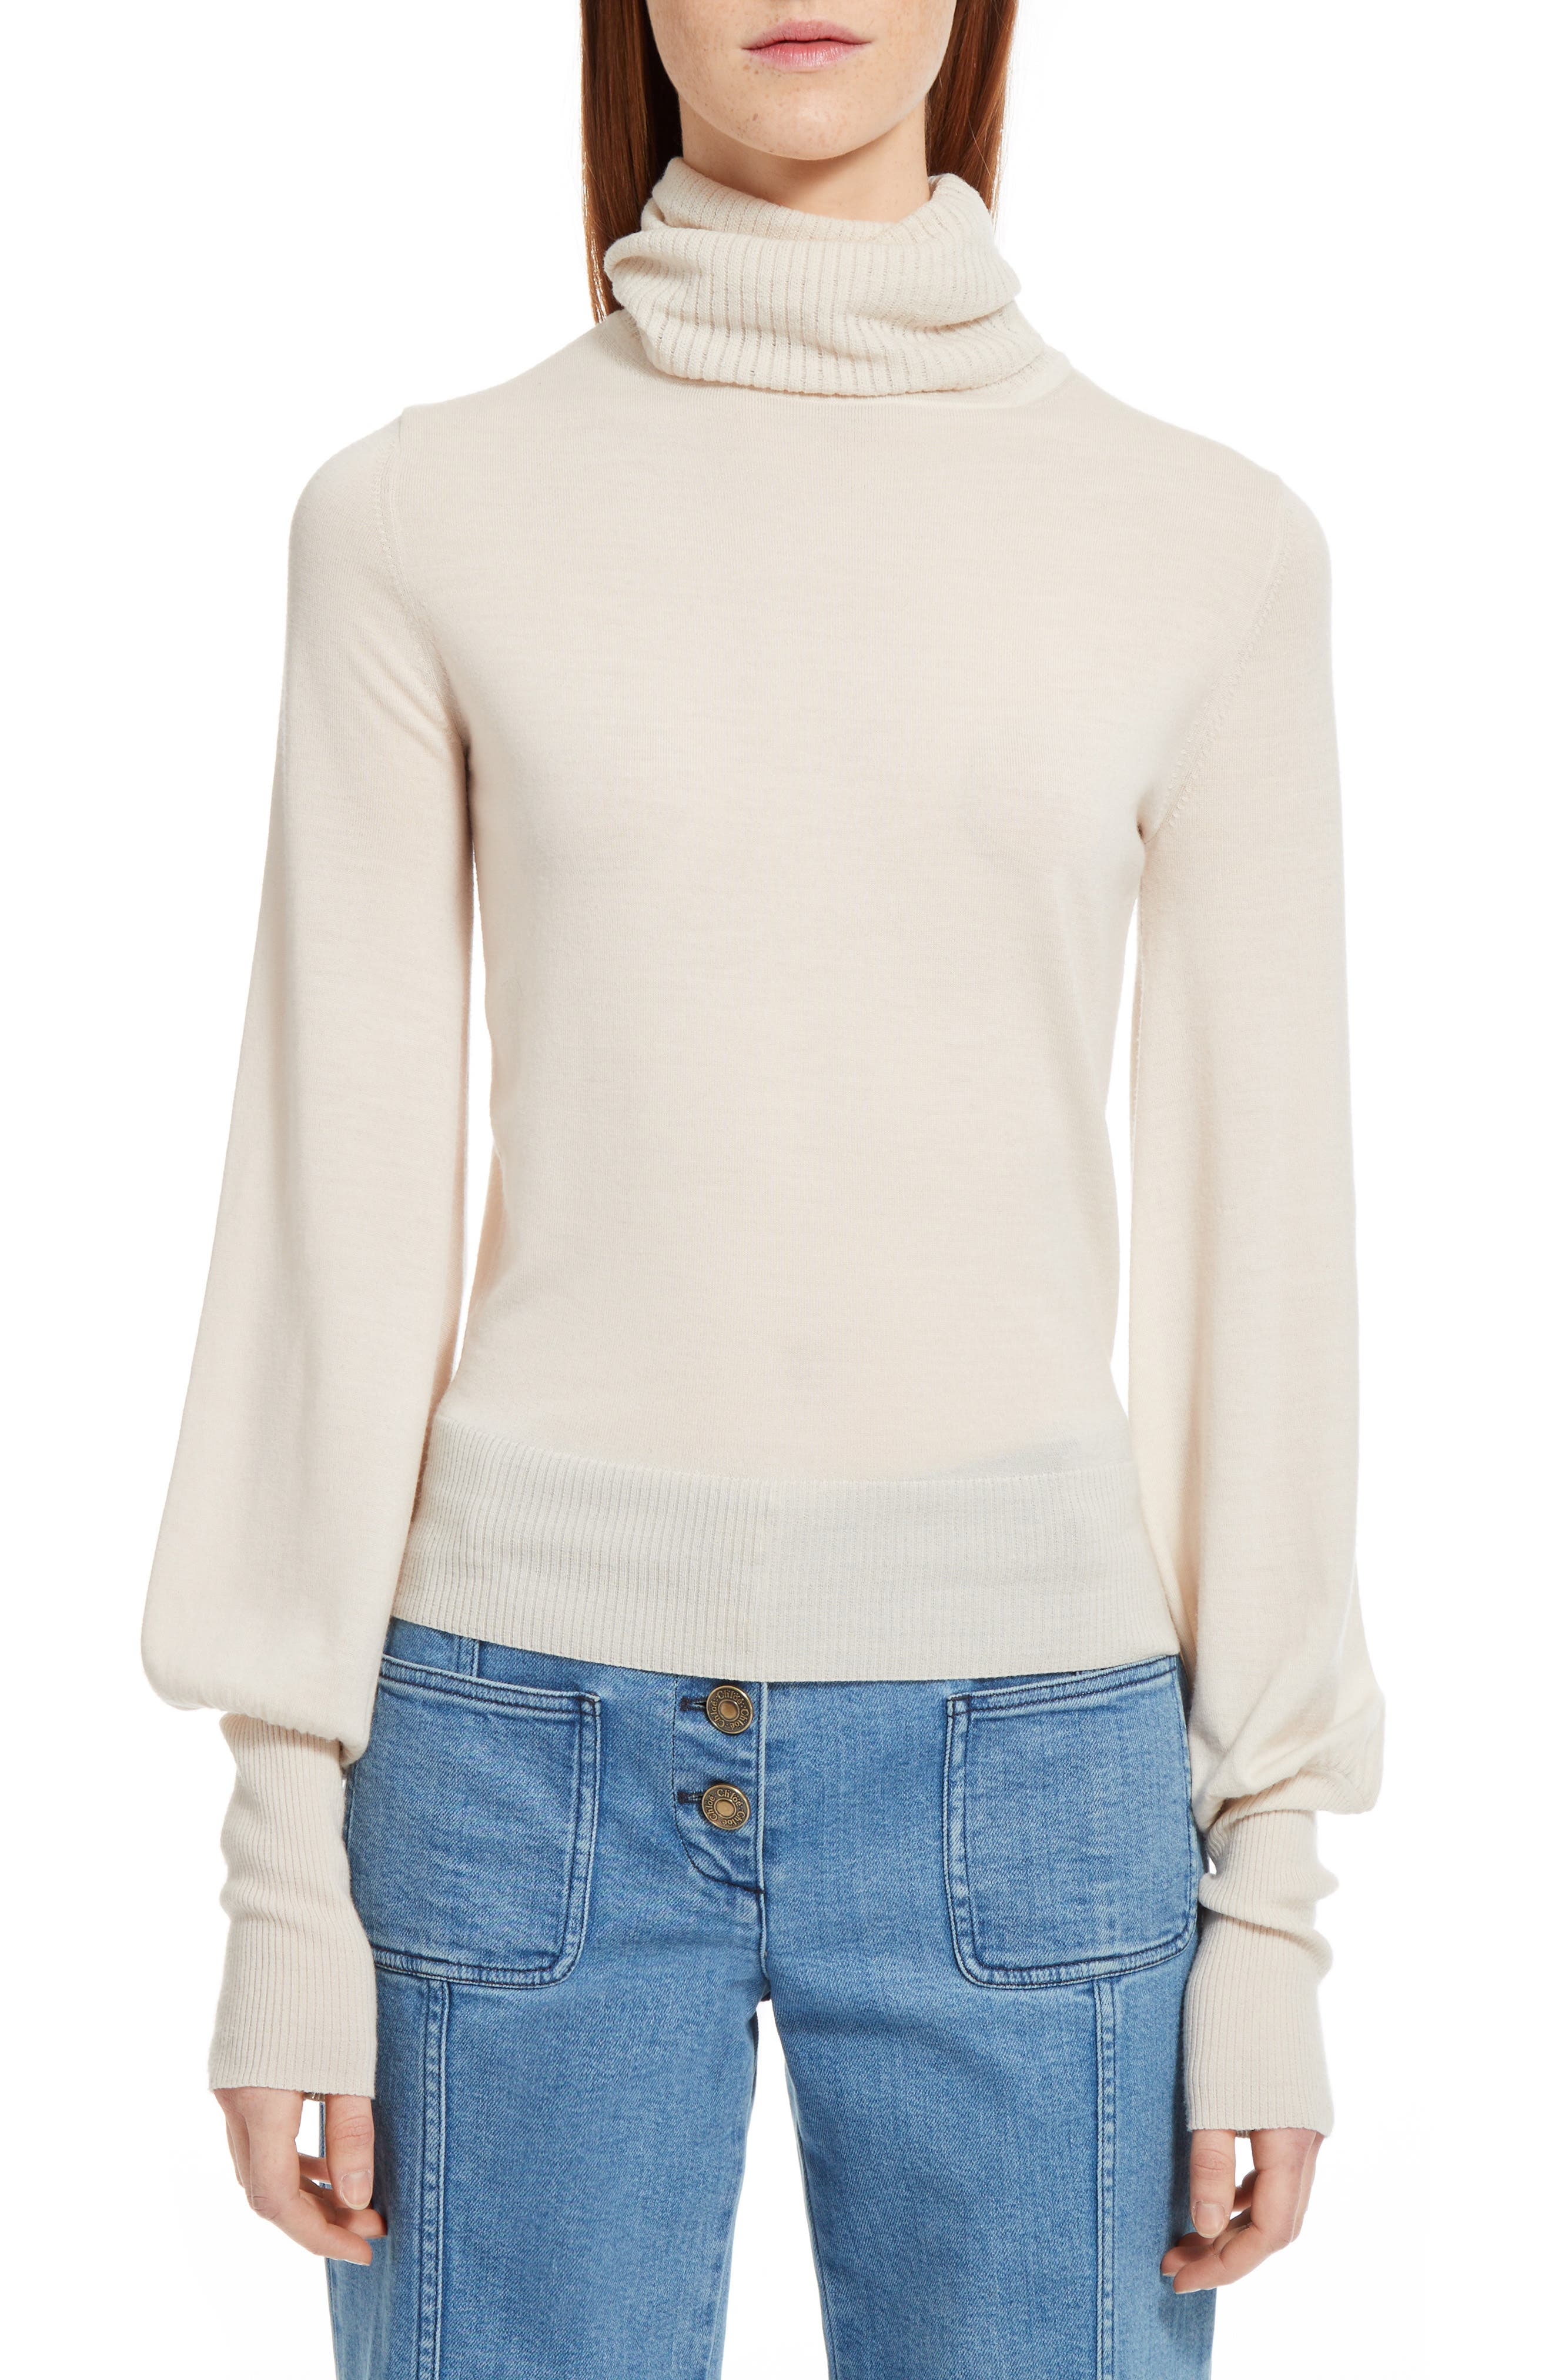 Alternate Image 1 Selected - Chloé Wool Turtleneck Sweater